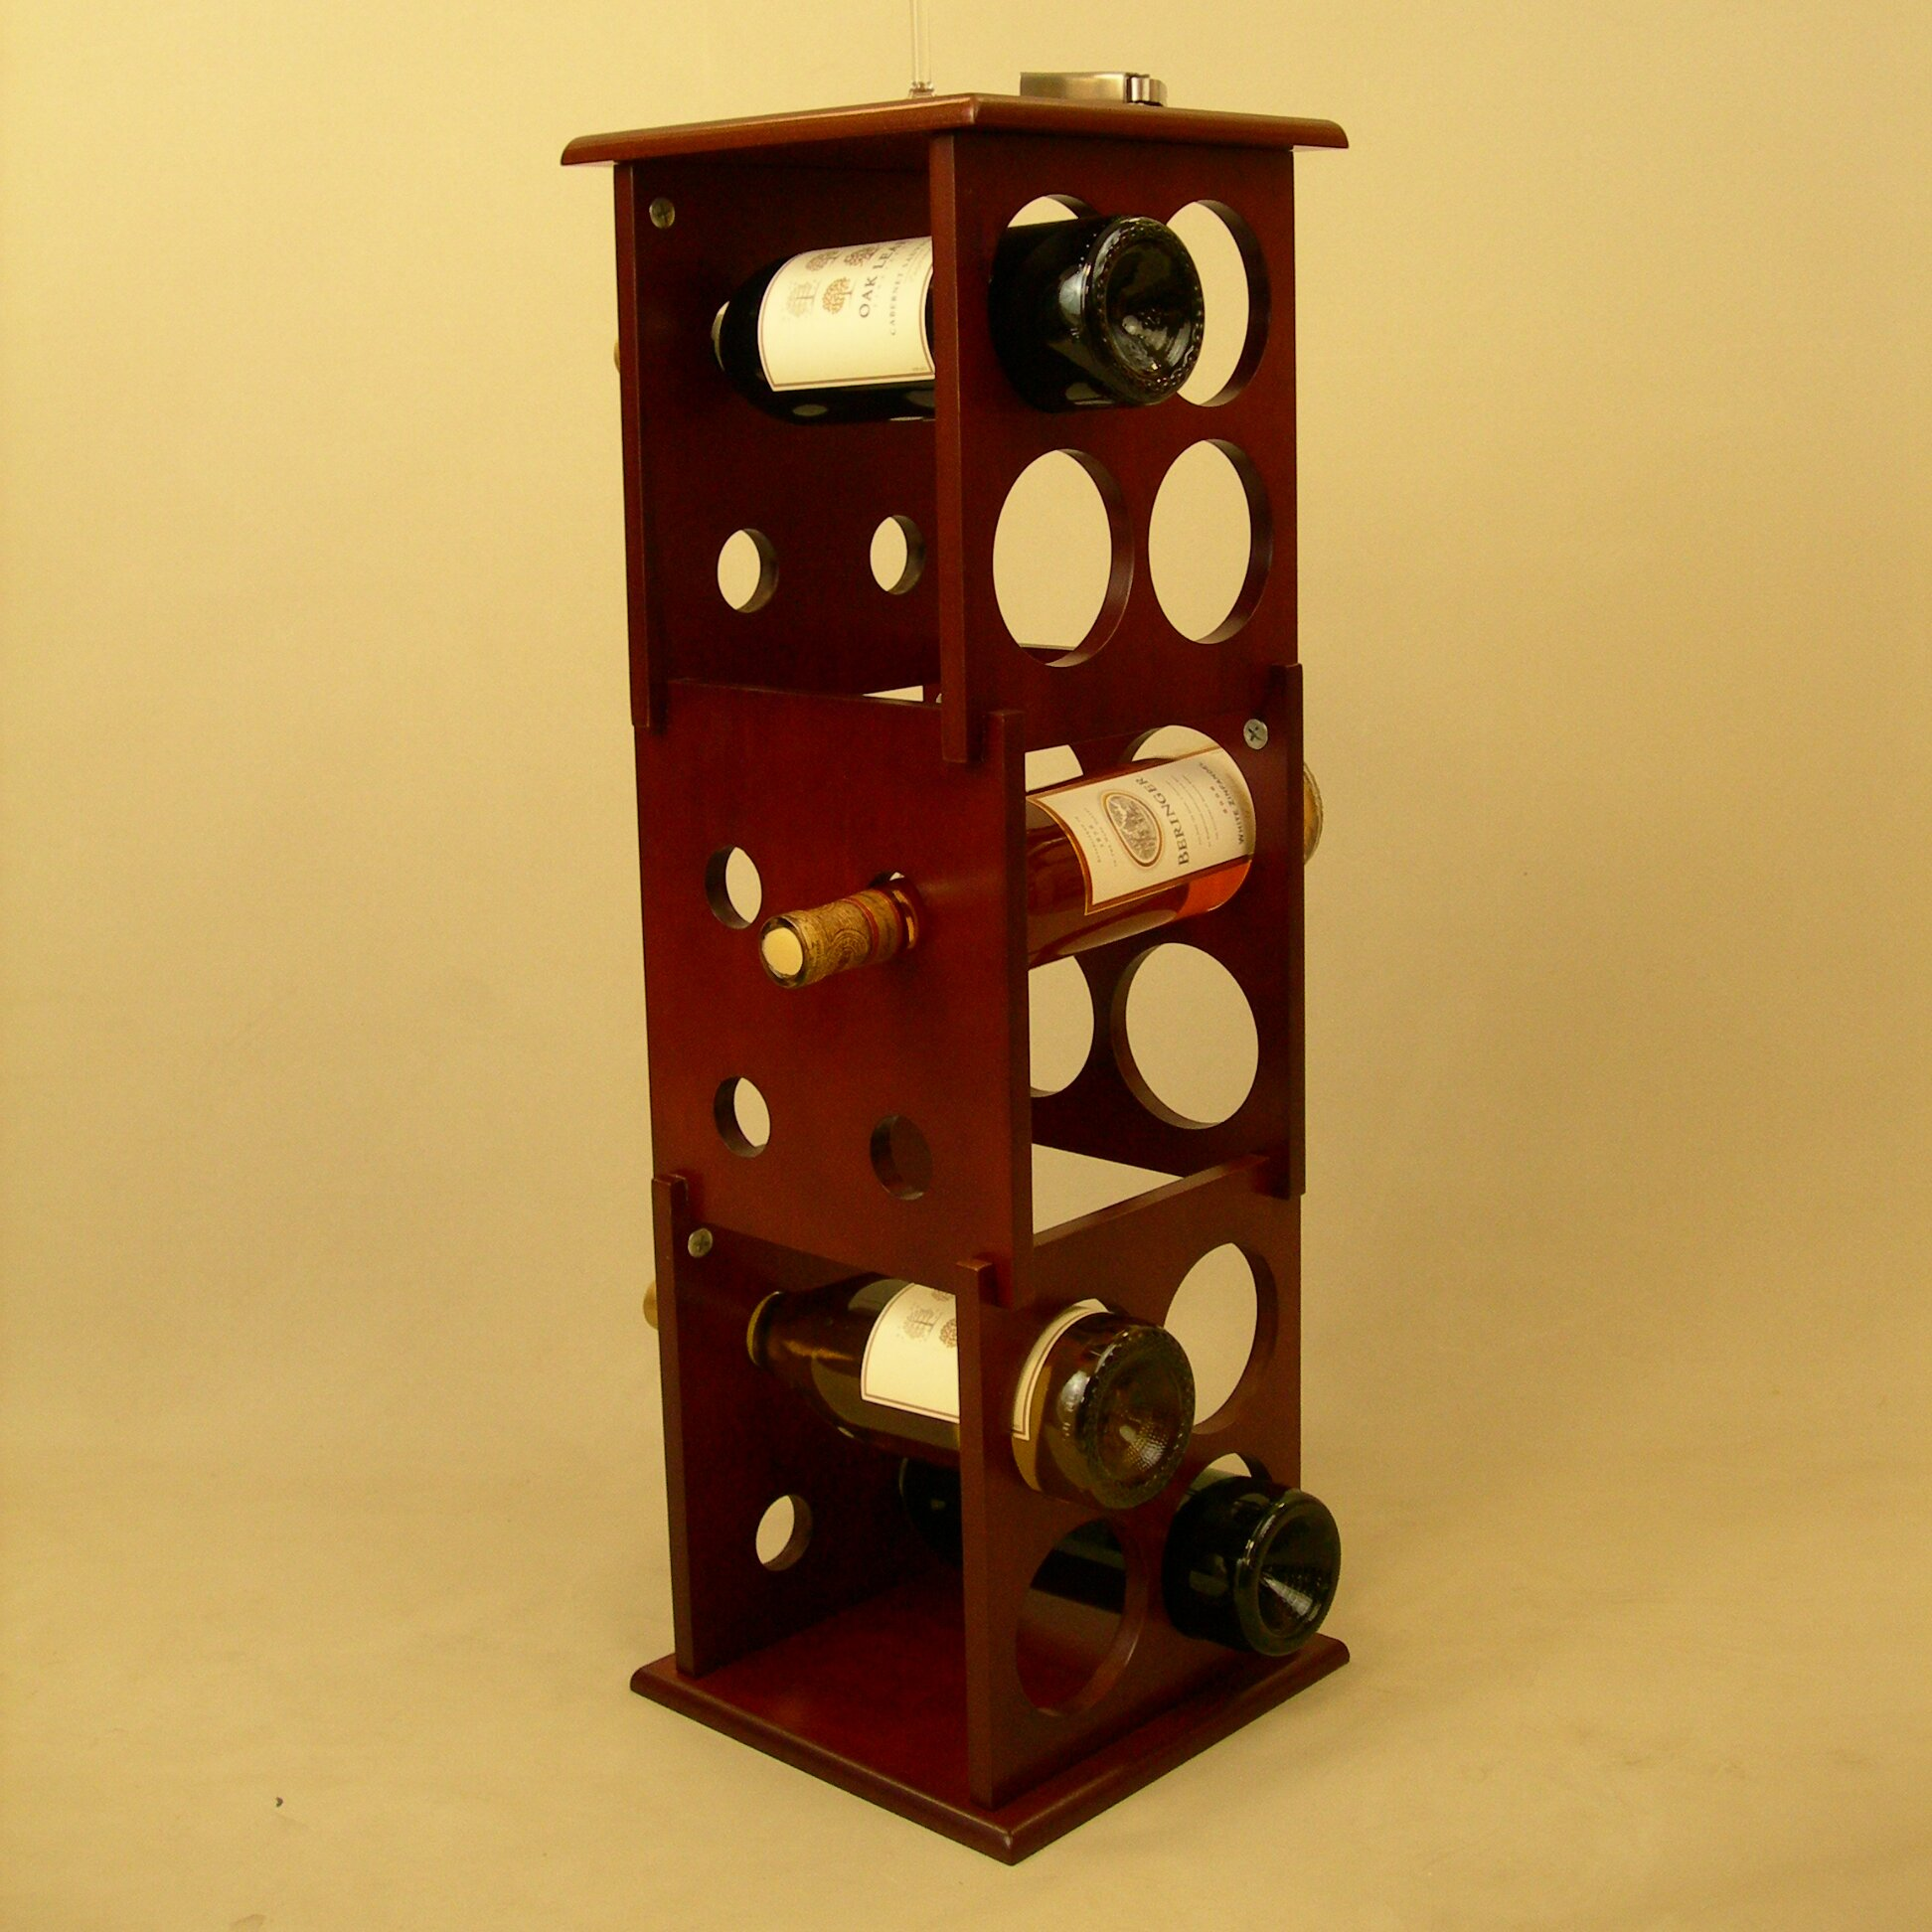 Proman fuji 12 bottle floor wine rack reviews wayfair for Floor wine rack